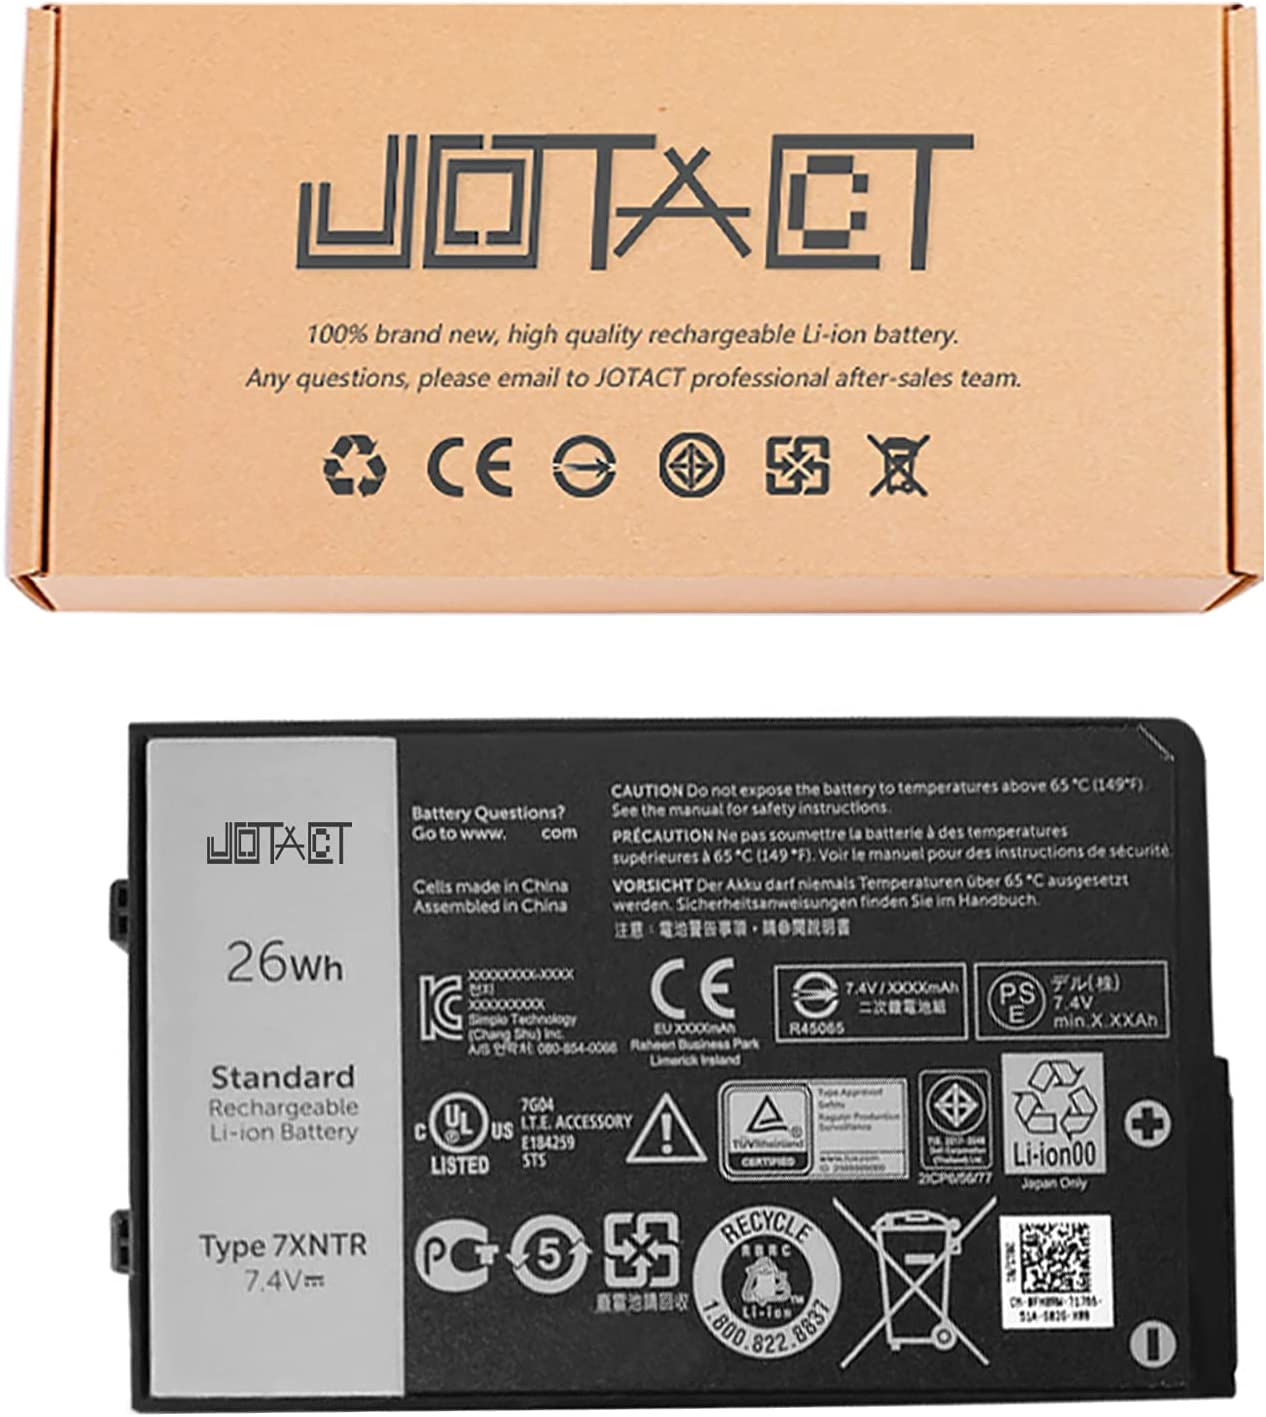 JOTACT 7XNTR(7.4V 26Wh/3420mAh 4-Cell) Tablet Battery Compatible with Dell Latitude 7202 7212 7220 Rugged Extreme Tablet Series FH8RW J7HTX J82G5